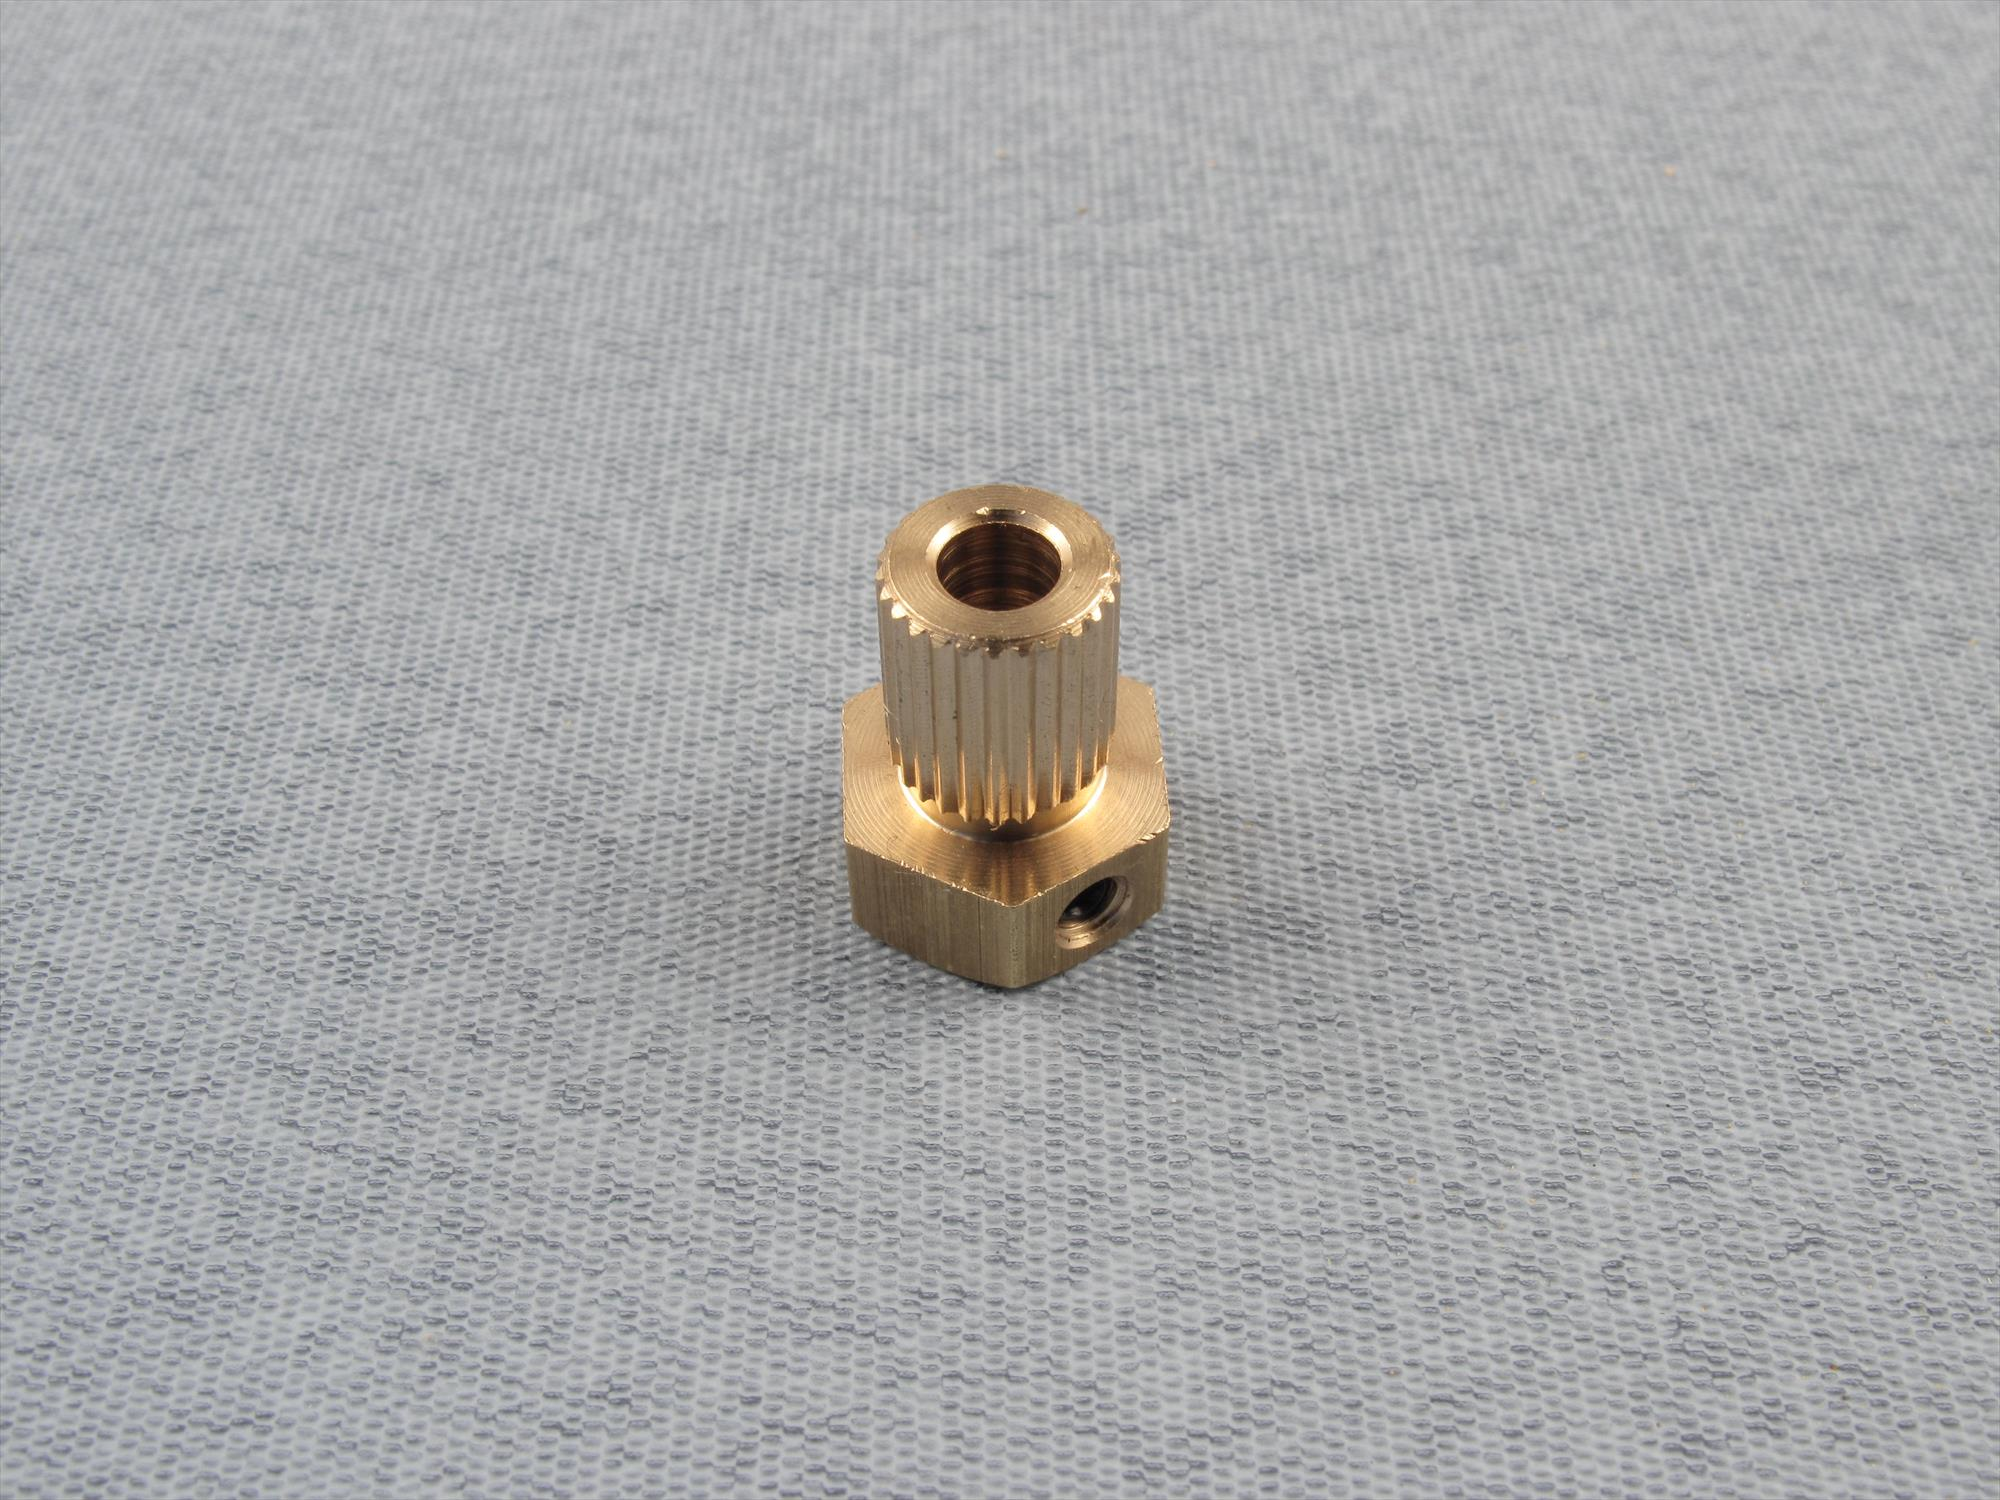 Couple - Plain Bore Insert 4.0mm